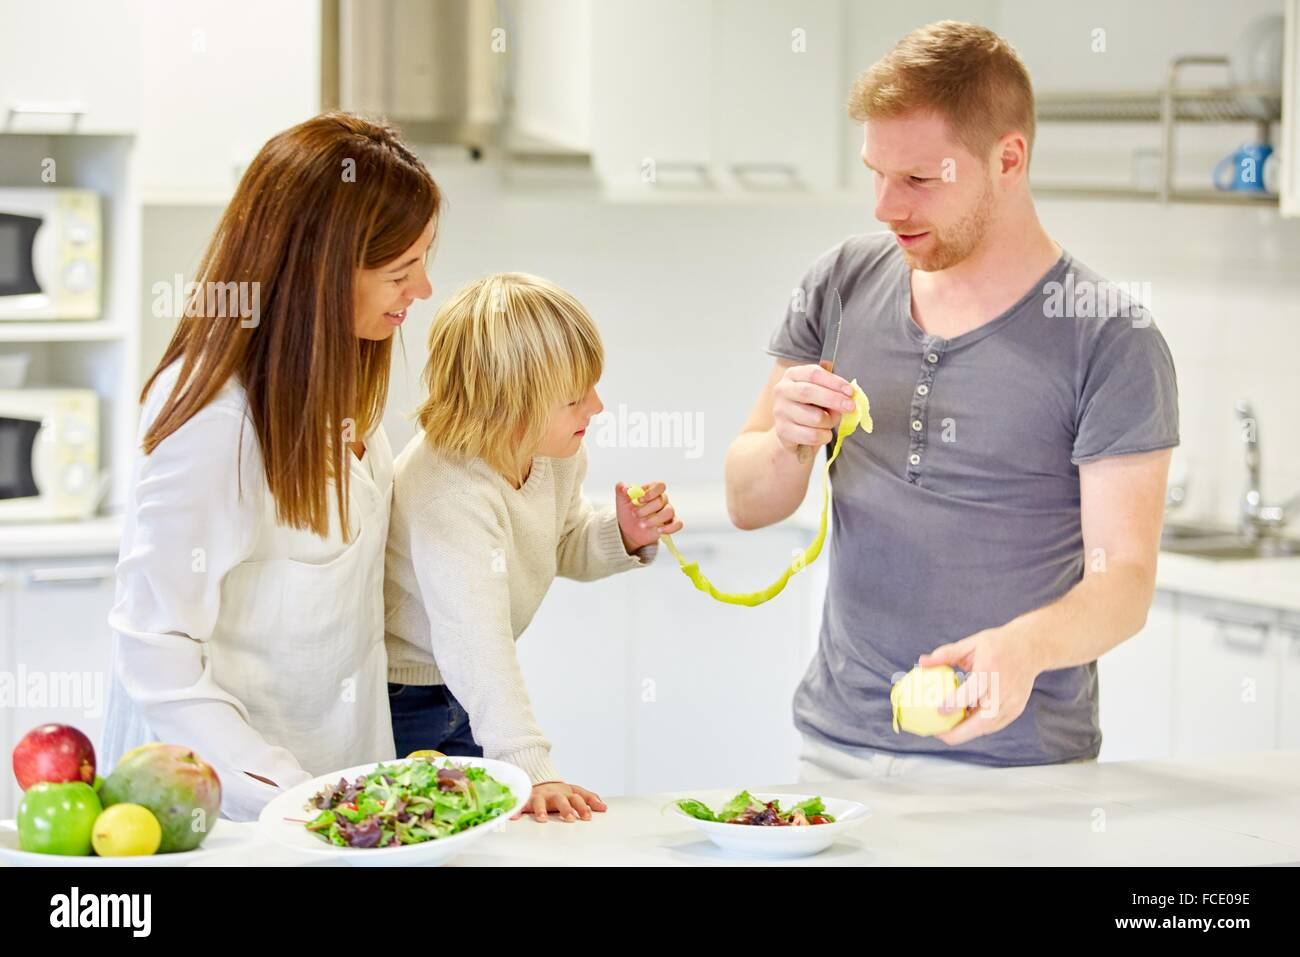 Family in the kitchen. Parents and son. Healthy eating. Healthy growth. Peeling an apple. - Stock Image